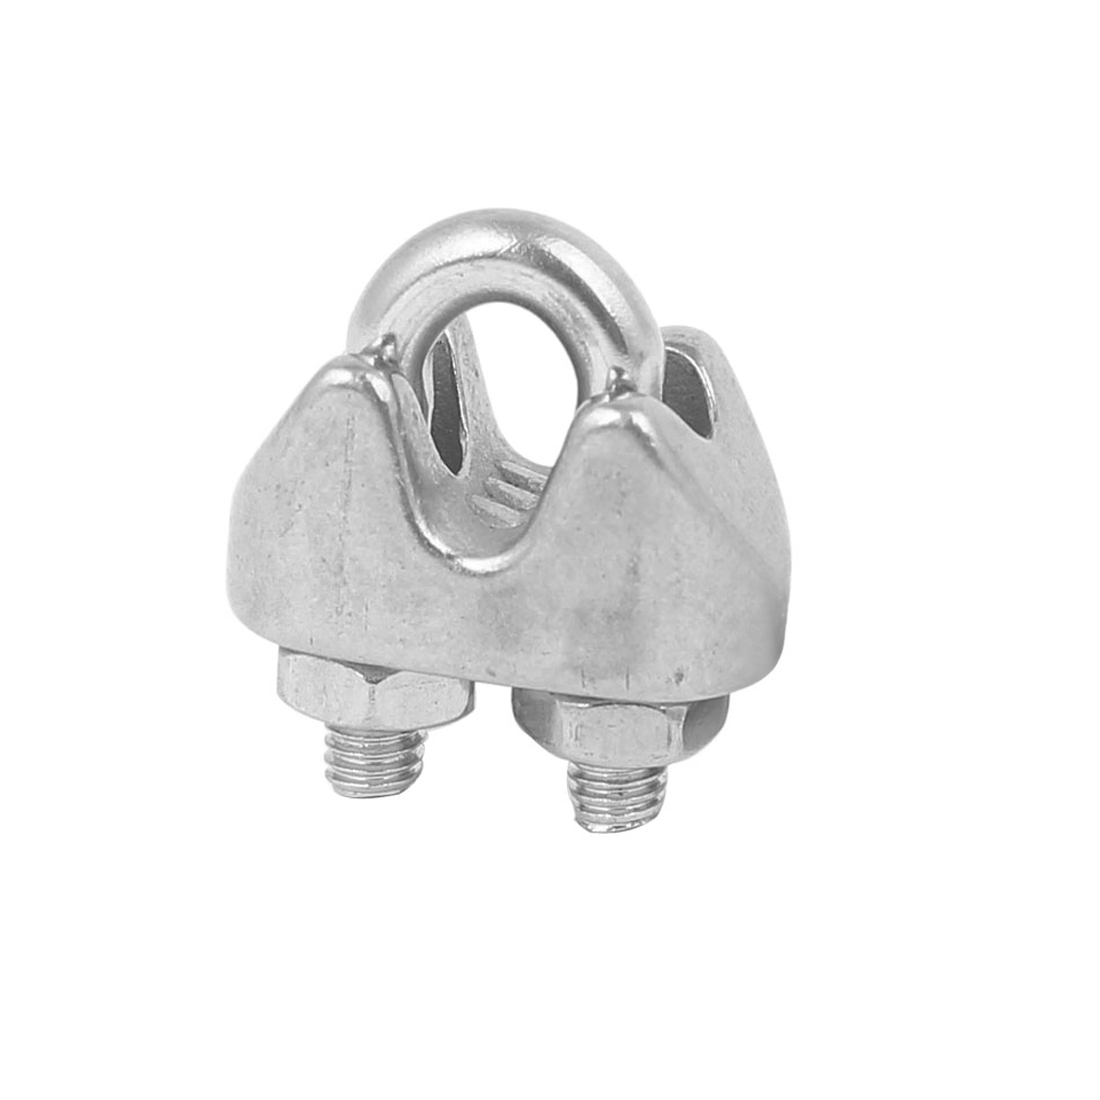 WNFOUS 20 Pcs Wire Rope Clip Clamp M5 304 Stainless Steel U Bolt Saddle Fastener Wire Rope Cable